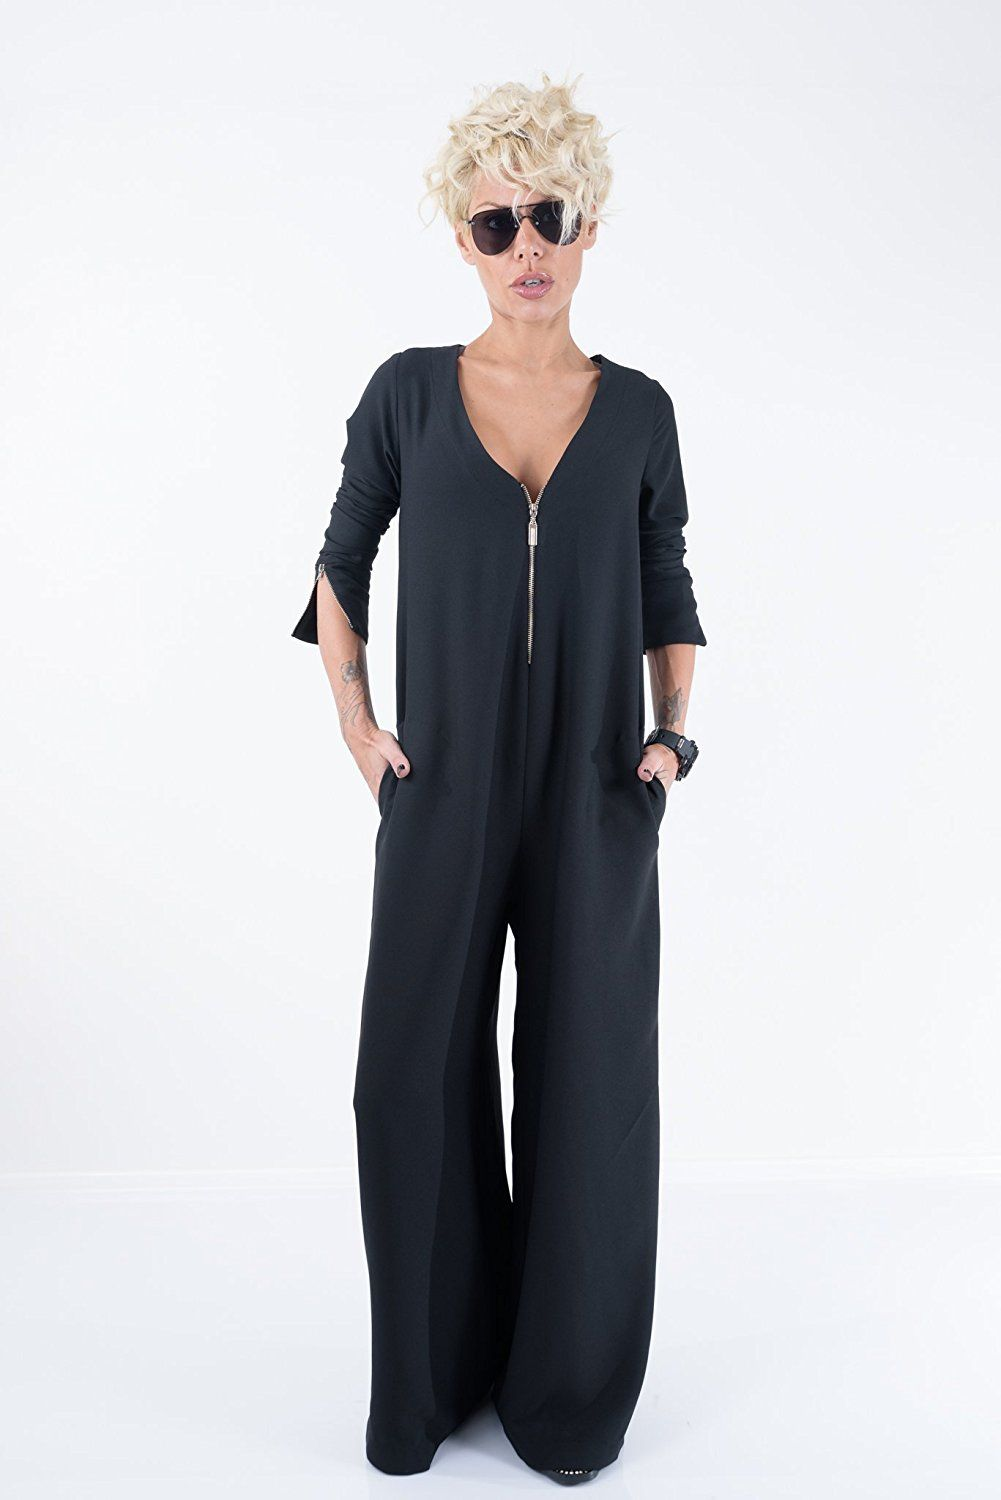 d7e234e3aeca Amazon.com  LOCKERROOM Black Loose Maxi Sexy Women Long Sleeve Plus Size  Jumpsuit Maxi Overall  Handmade